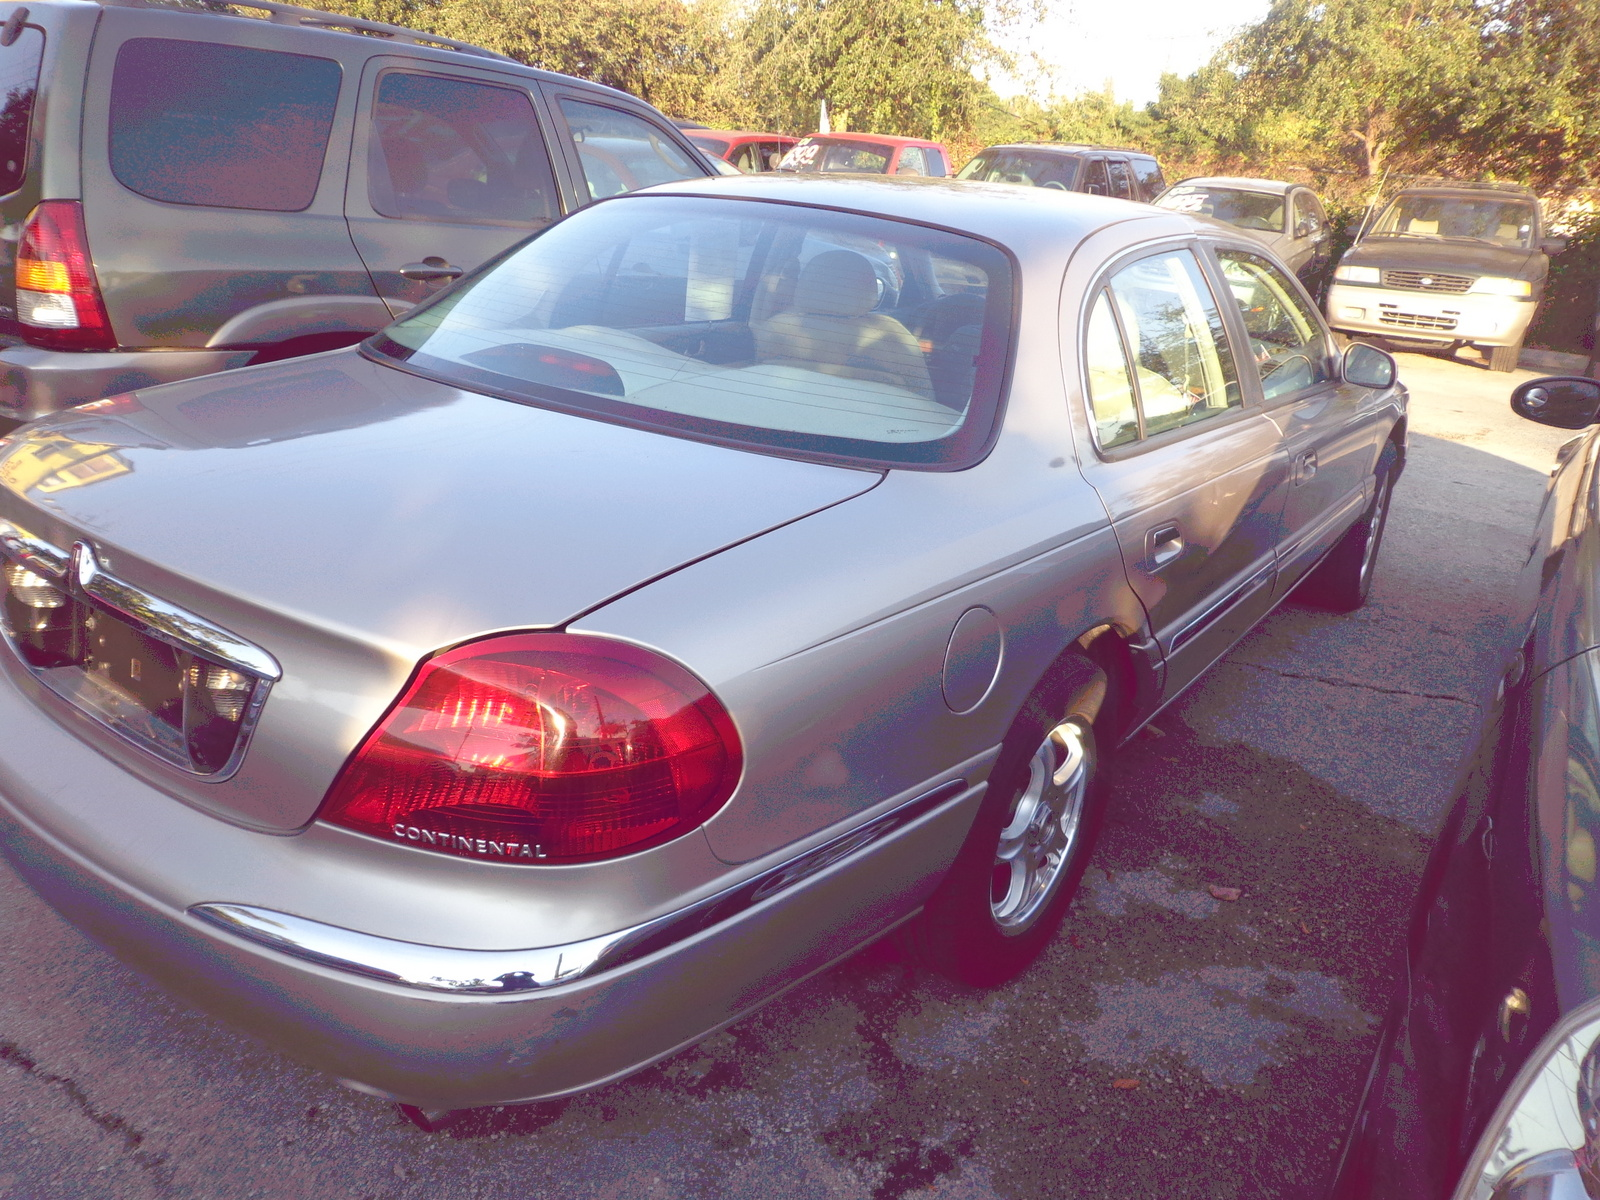 Picture of 1999 Lincoln Continental 4 Dr STD Sedan